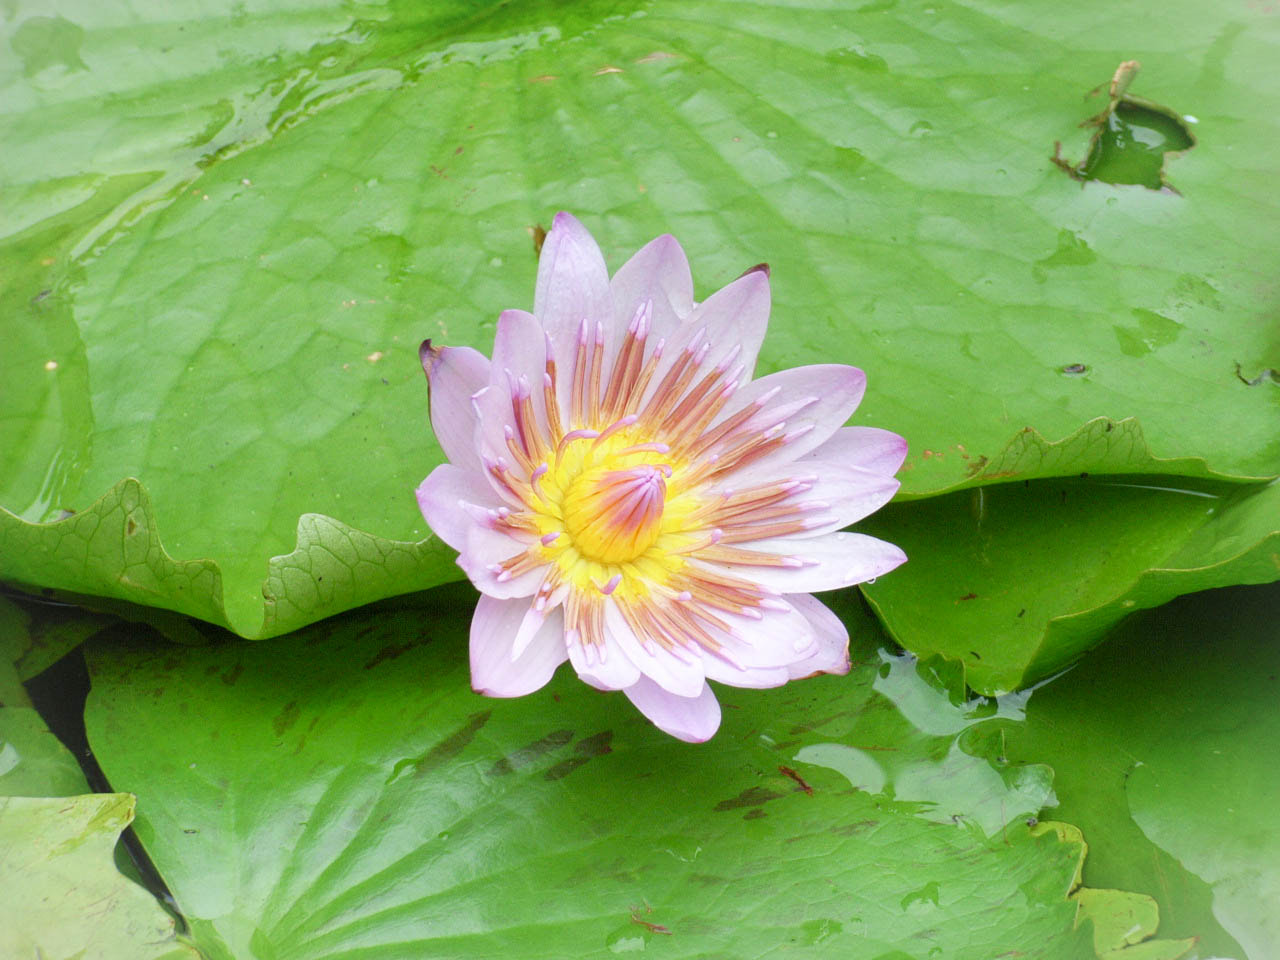 Photograph Water lily by Kim Fong on 500px